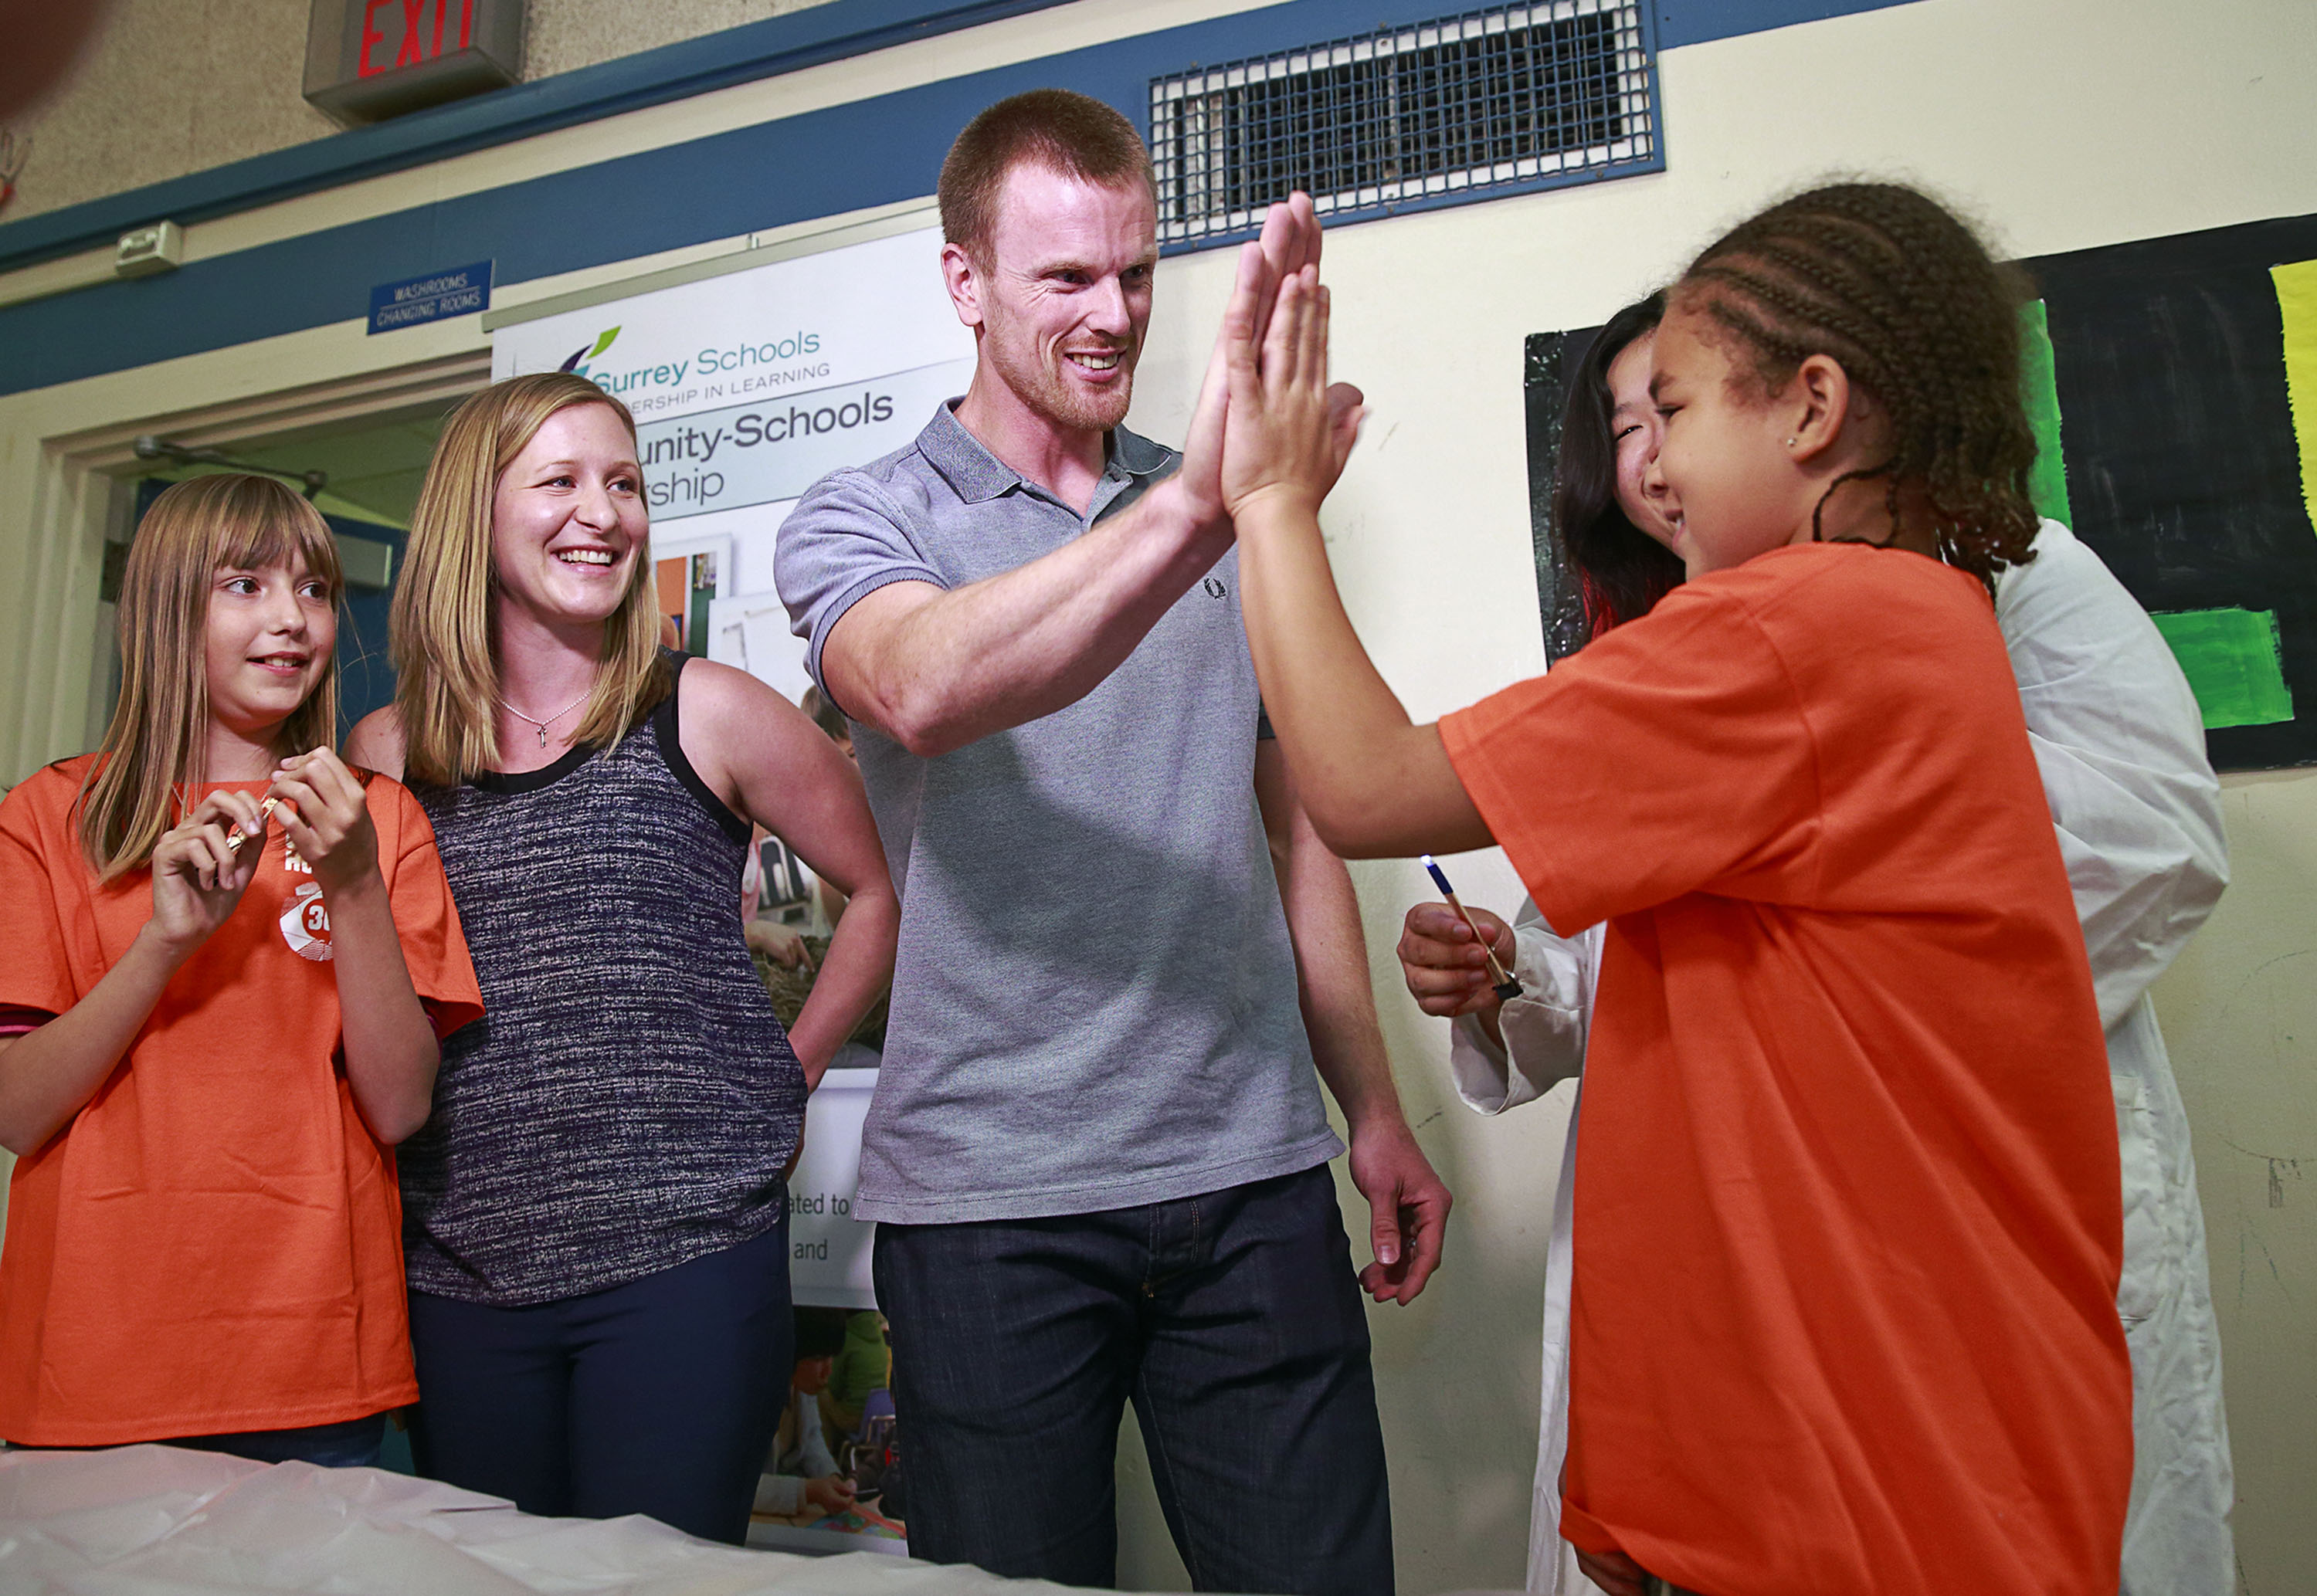 SURREY,  BC:  SEPTEMBER 14, 2015 - The Sedin families attend the Clubhouse 36 press conference in Surrey, BC, Canada September 14, 2015.  Photo by Jeff Vinnick